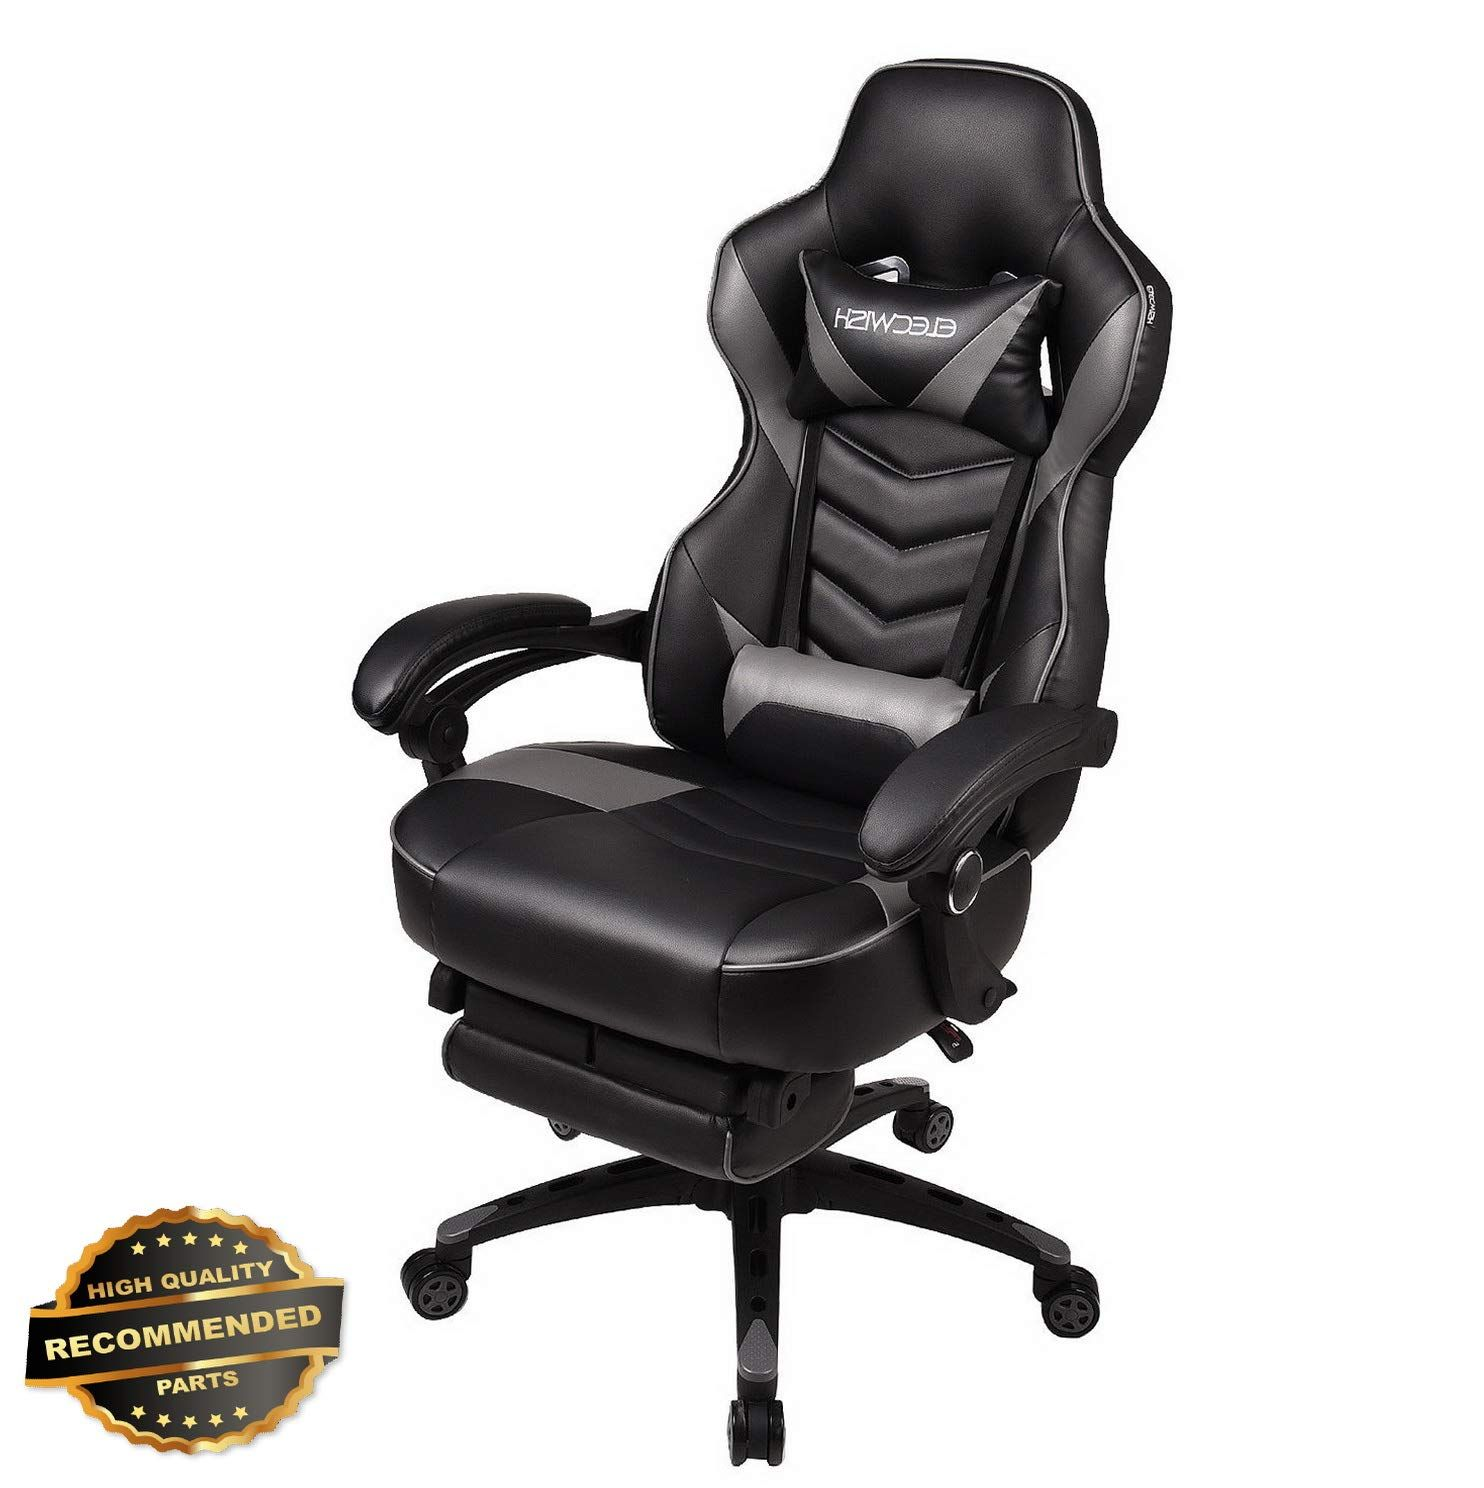 High Back Racing Computer Gaming Chair Ergonomic Office Desk Chair Recliner Home